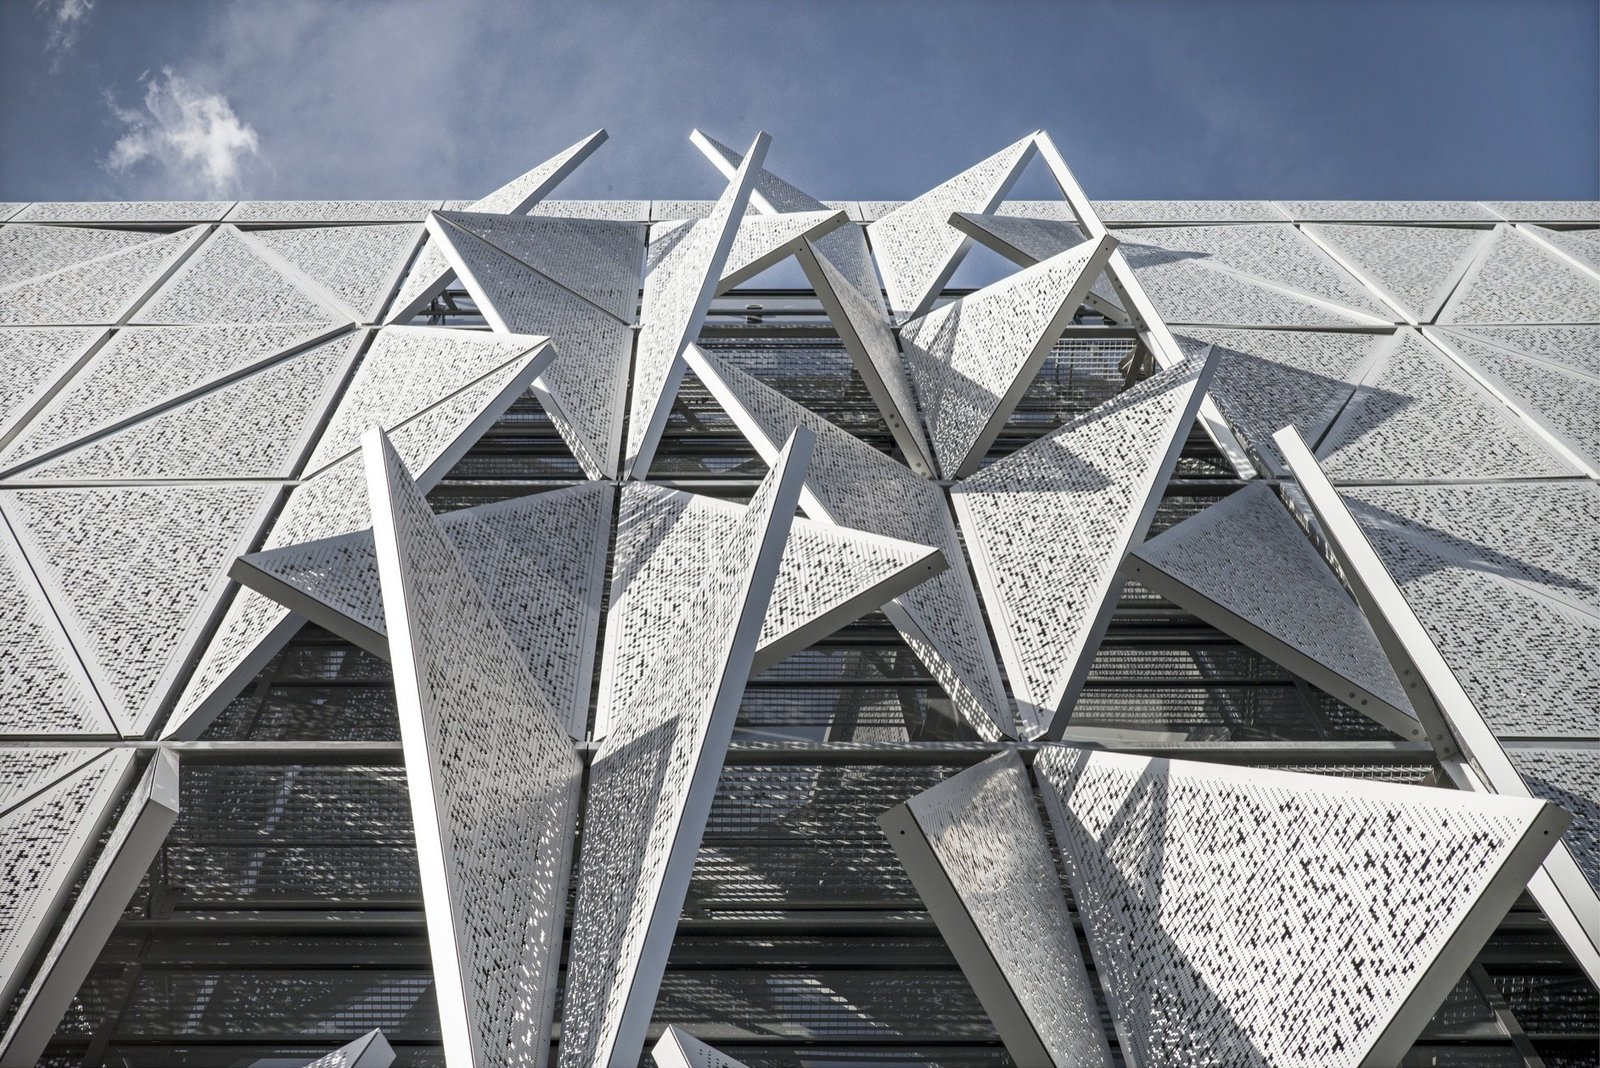 Photo 2 of 24 in Shape-Shifting Architecture: 10 Buildings That Move or Change Form